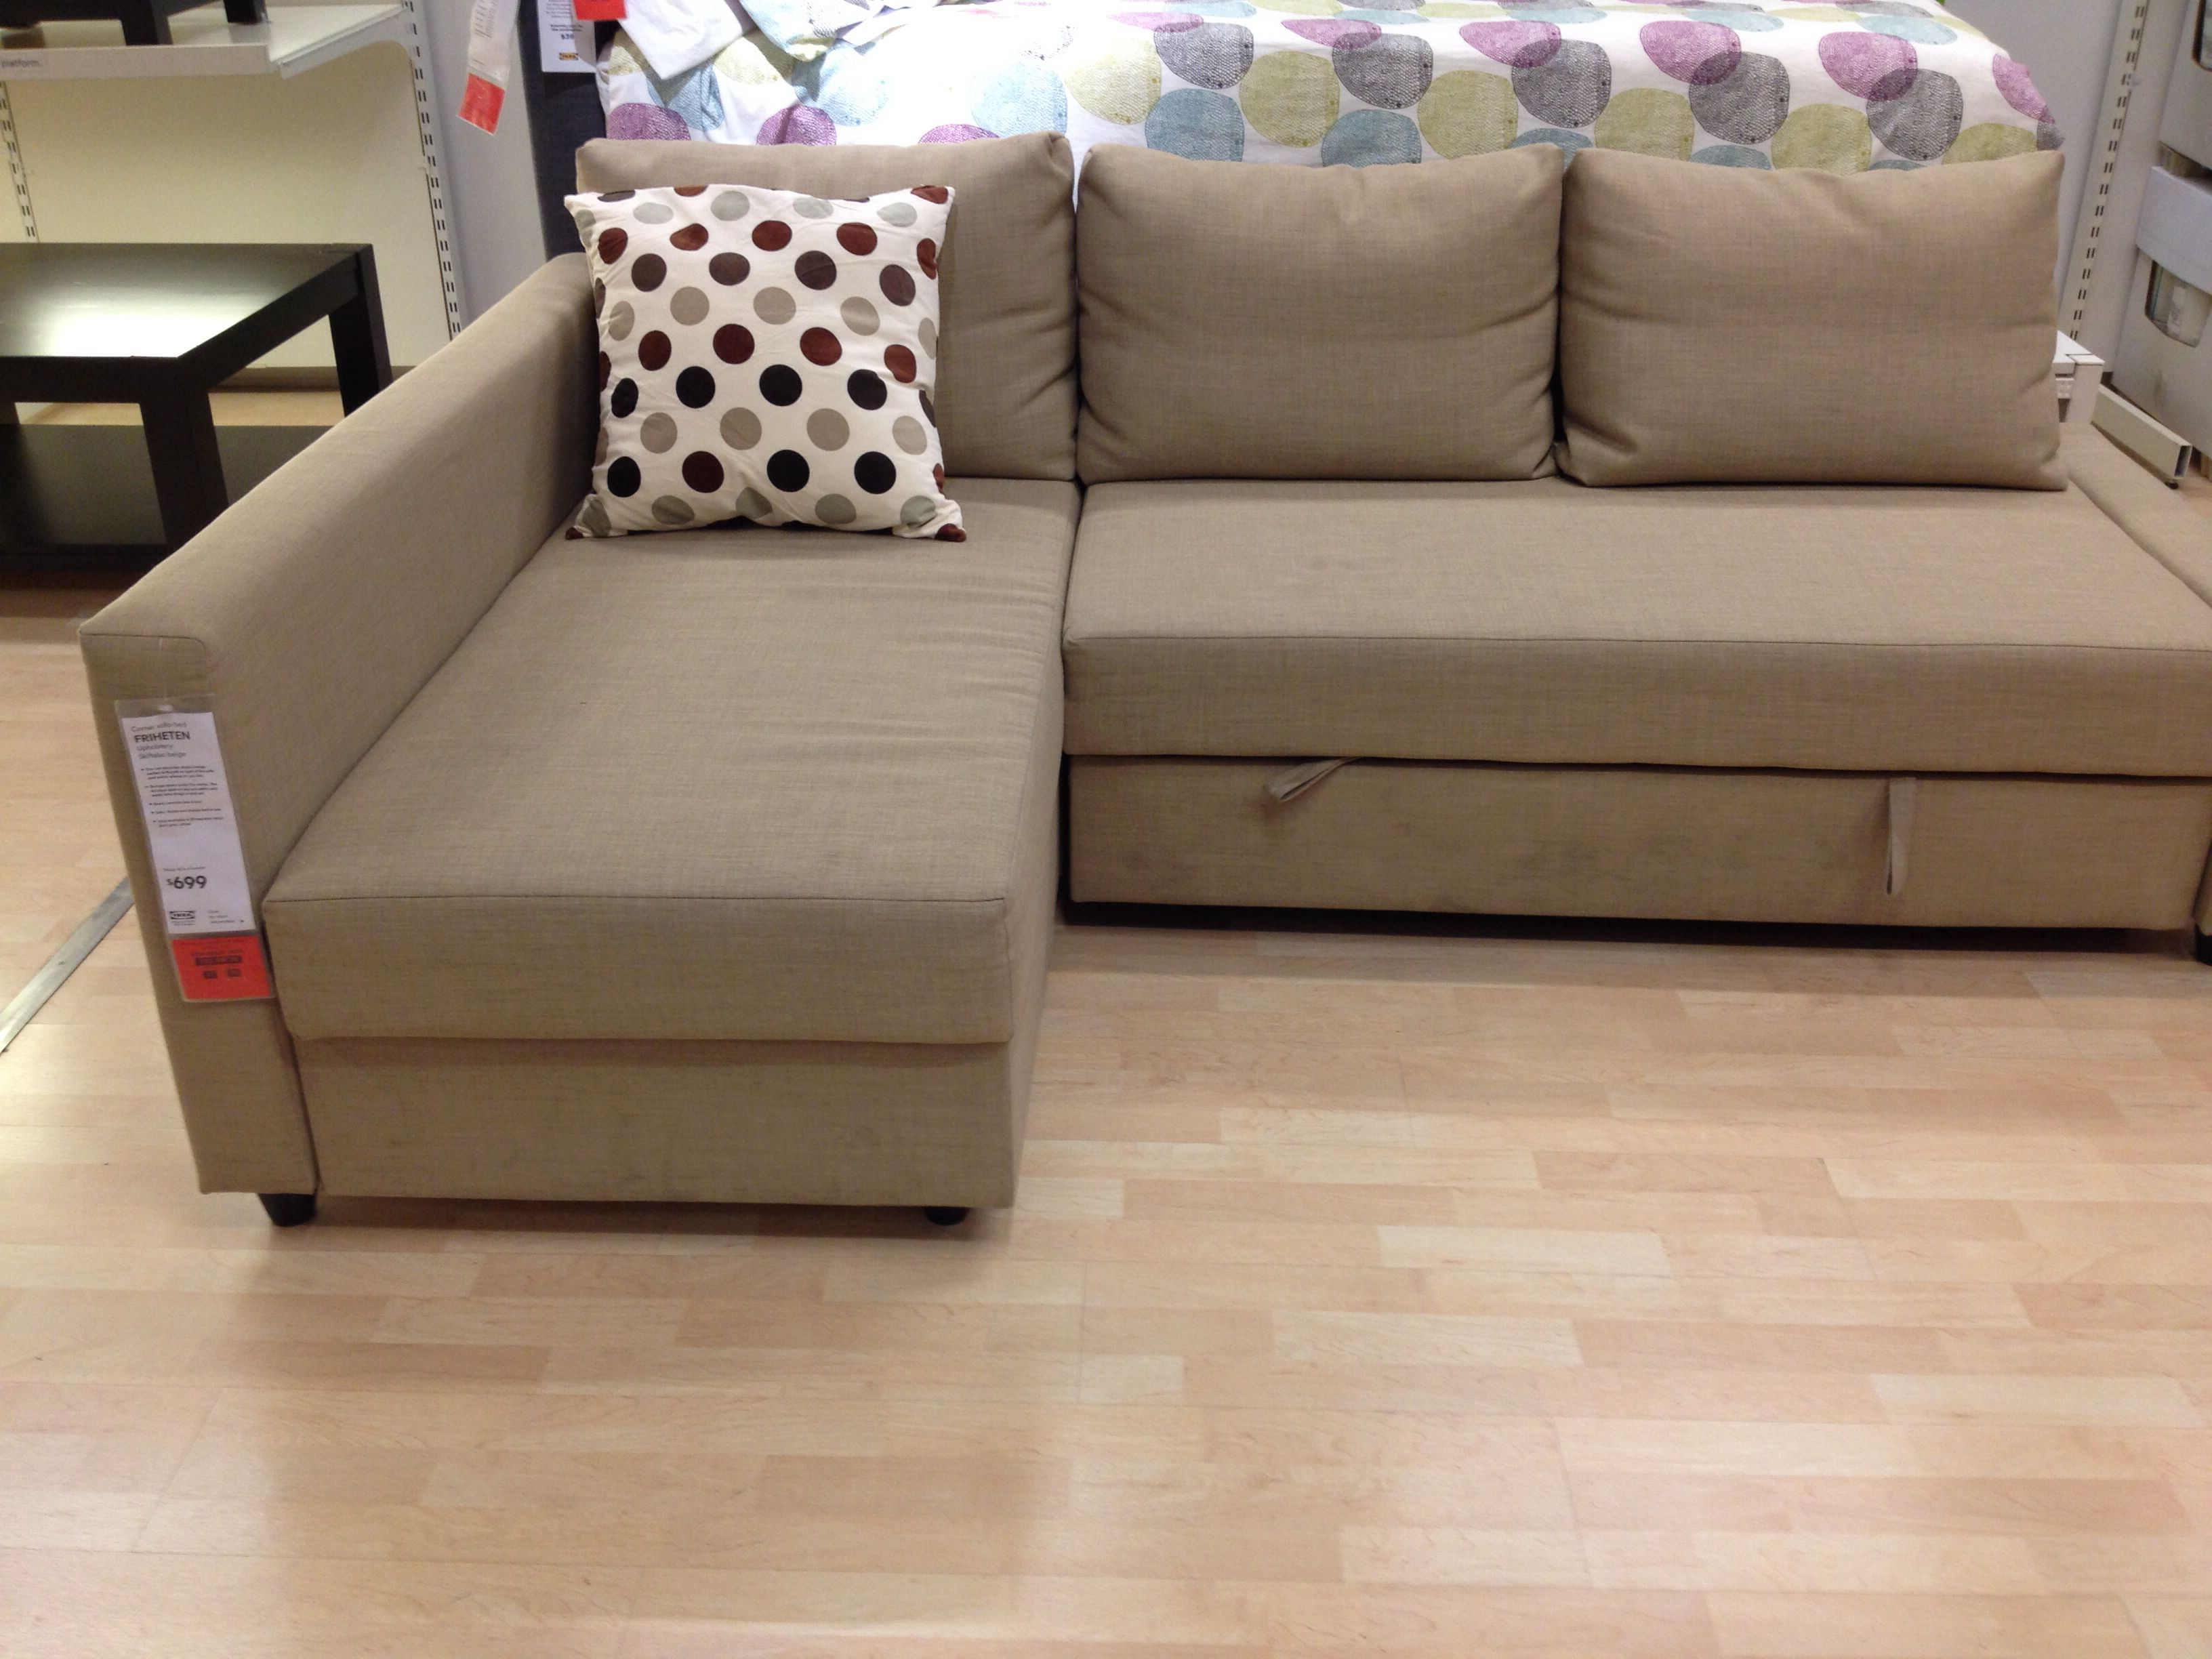 Canape Convertible Ikea 399 Euros Friheten Sofa From Ikea It Has A Bed 399 Euros Home Ideas